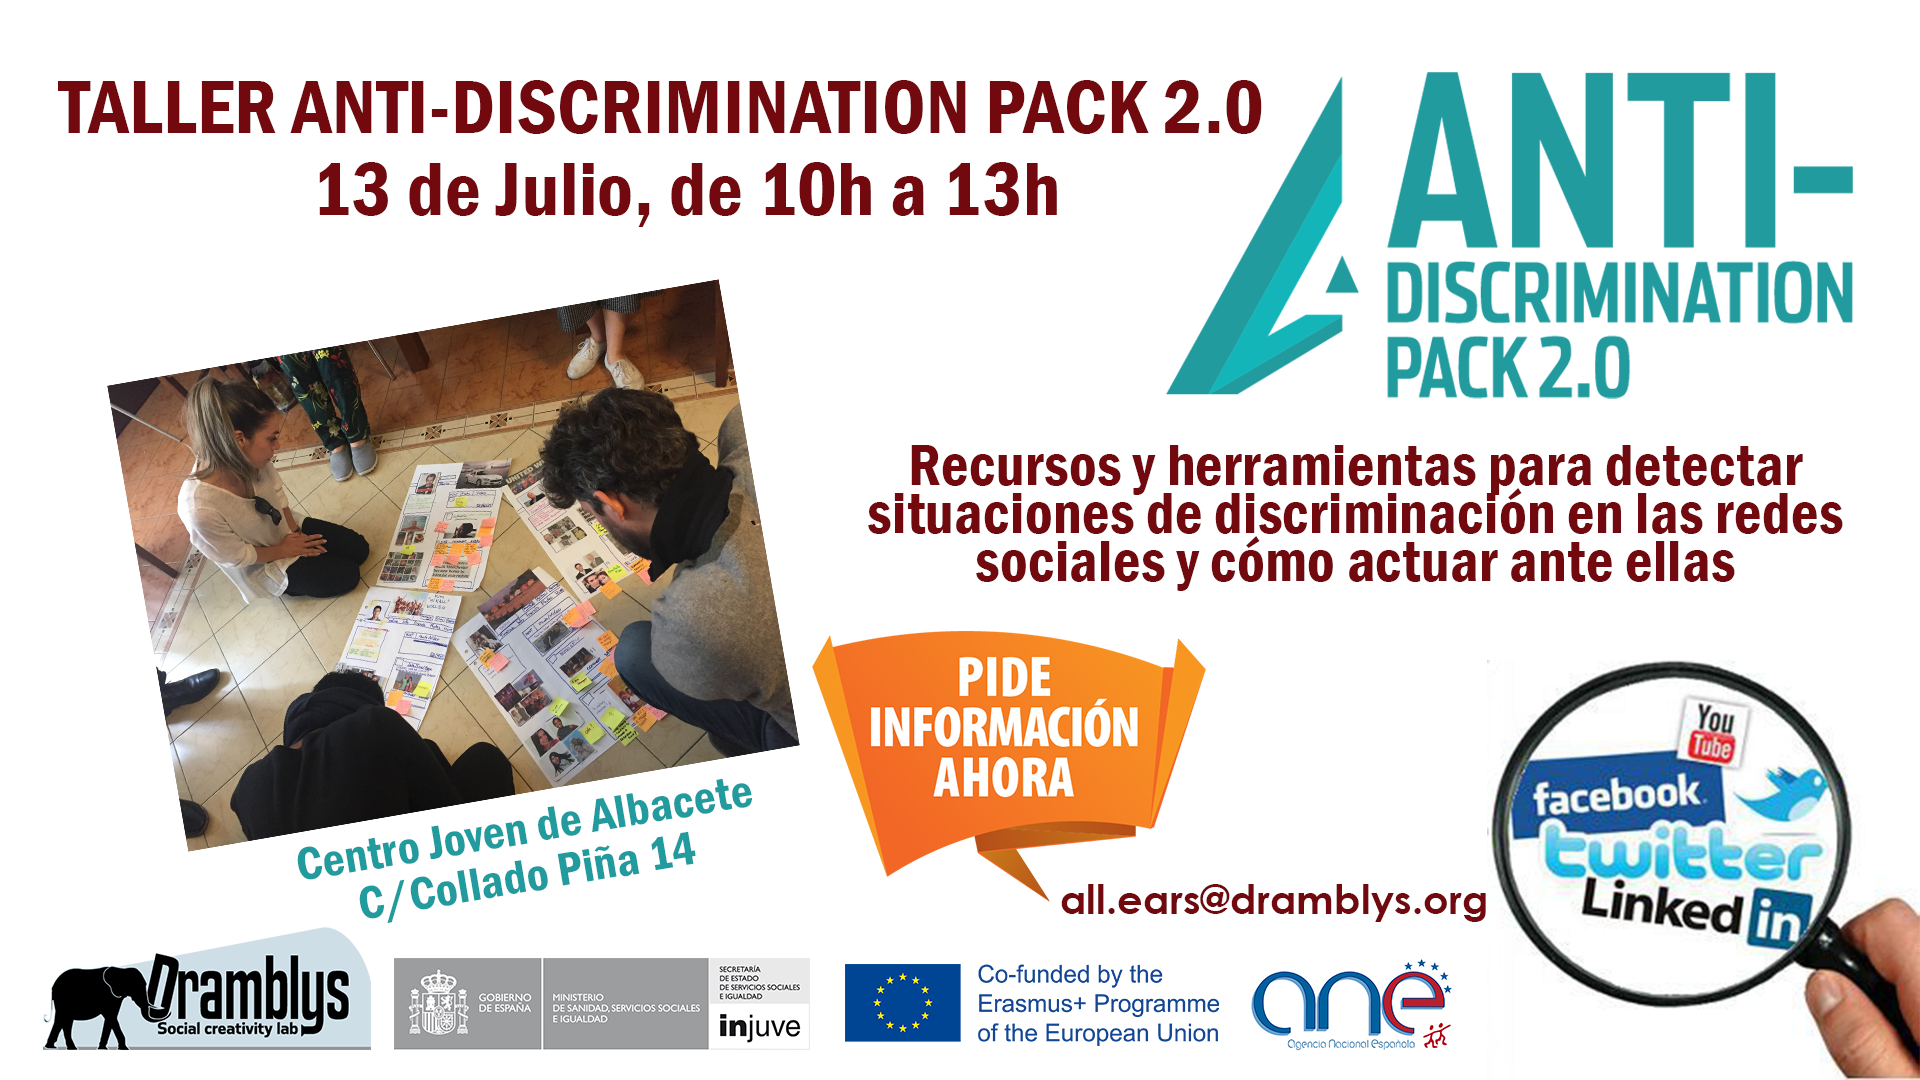 Taller Anti-discrimination Pack 2.0